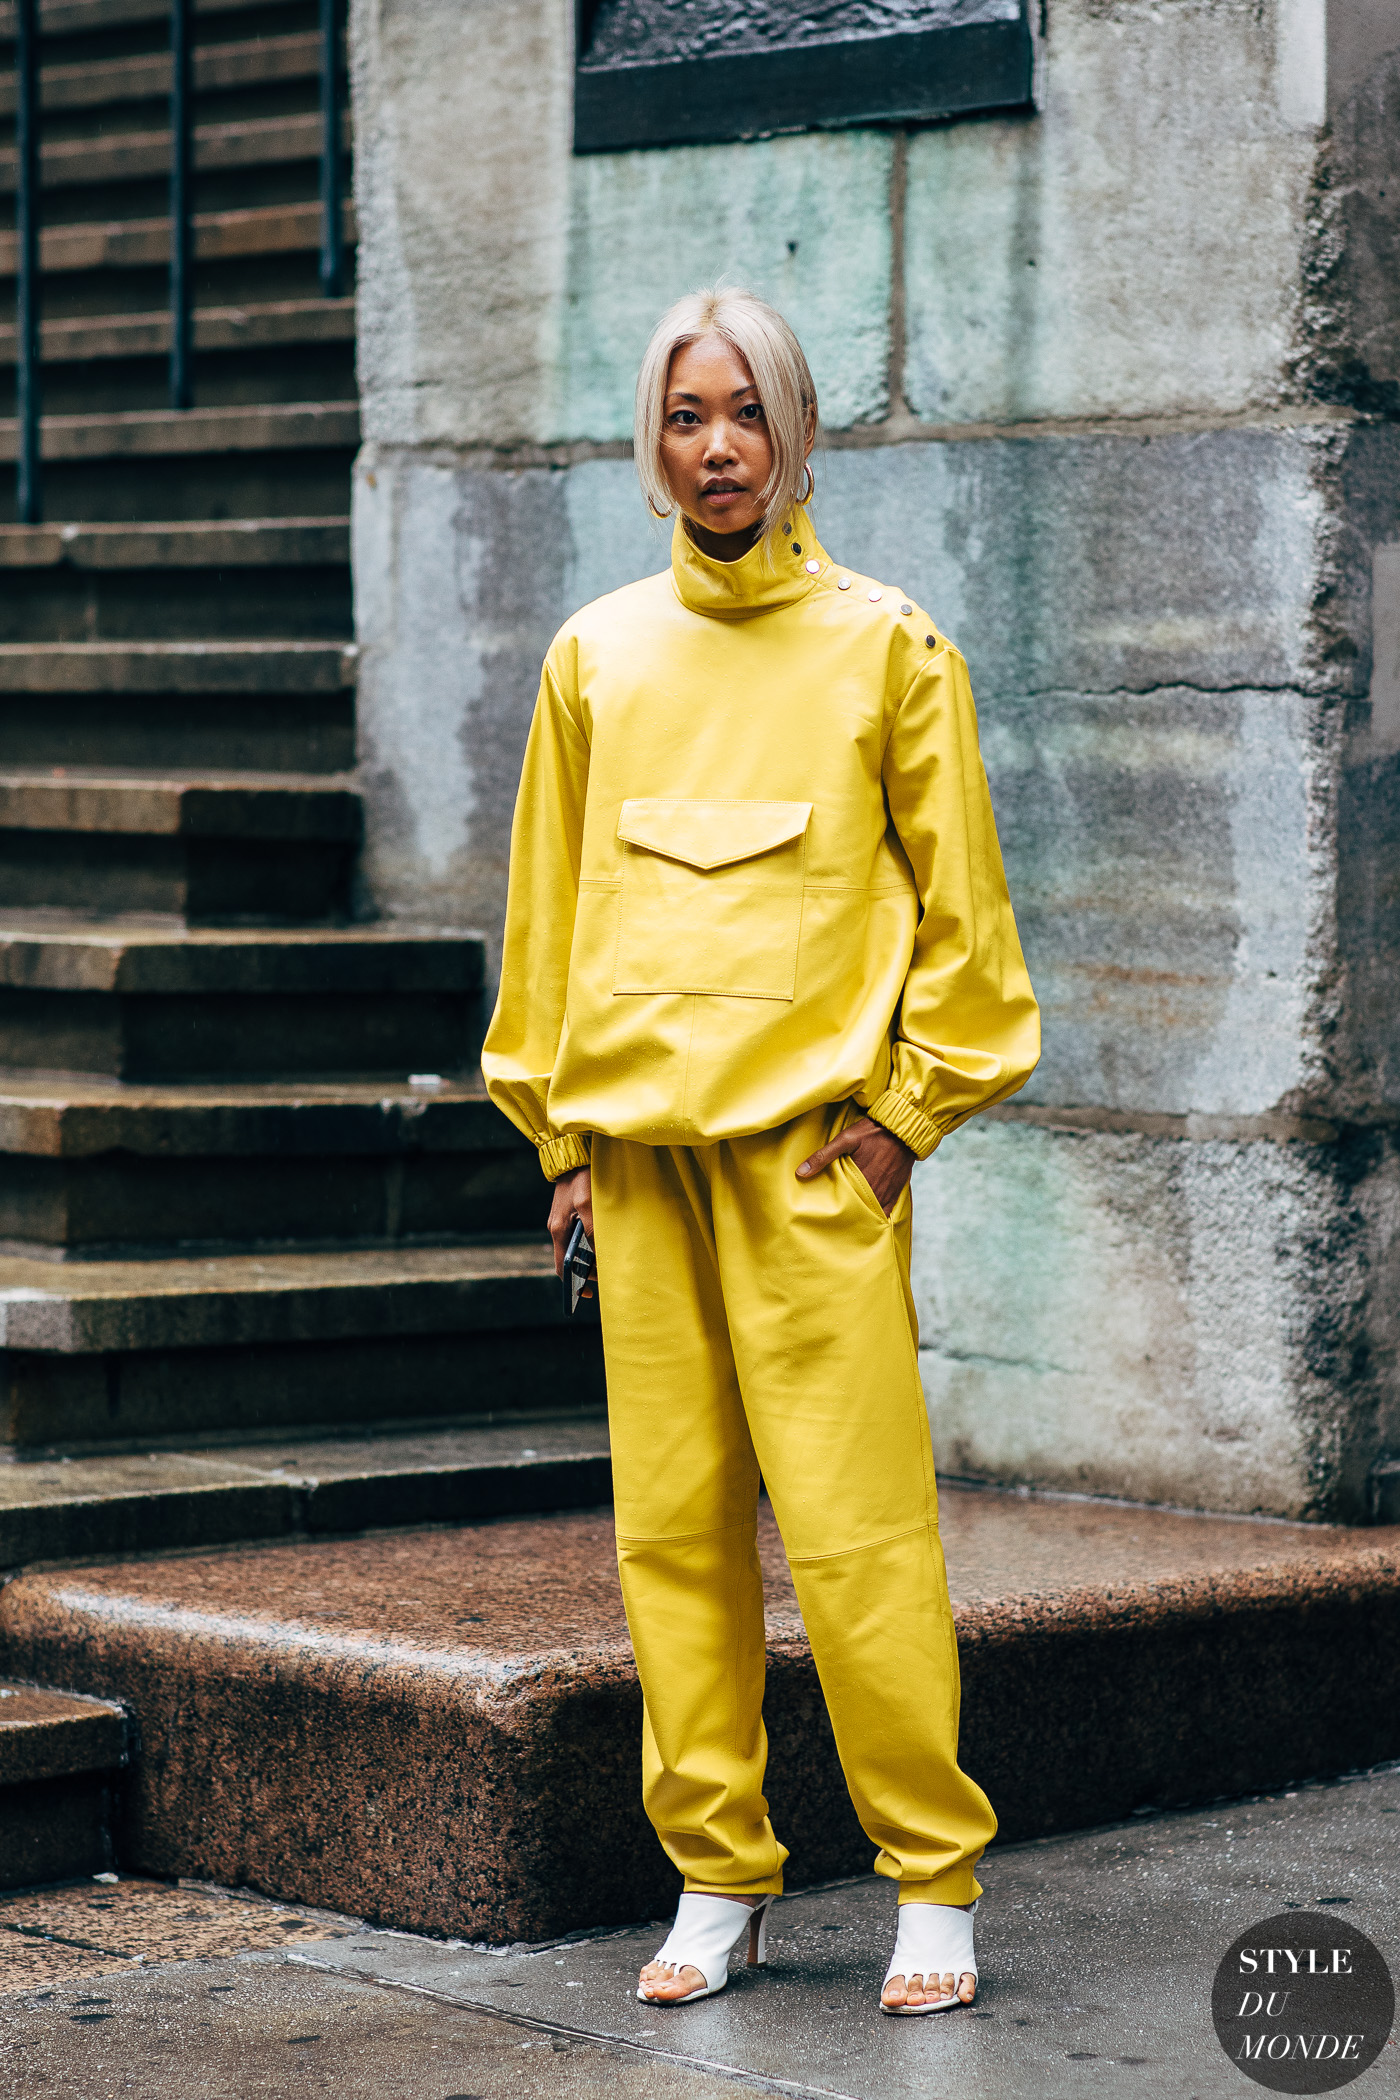 11aa28ee98 New York SS 2019 Street Style: Vanessa Hong. Vanessa Hong by STYLEDUMONDE  Street Style Fashion Photography20180909_48A9413 ...